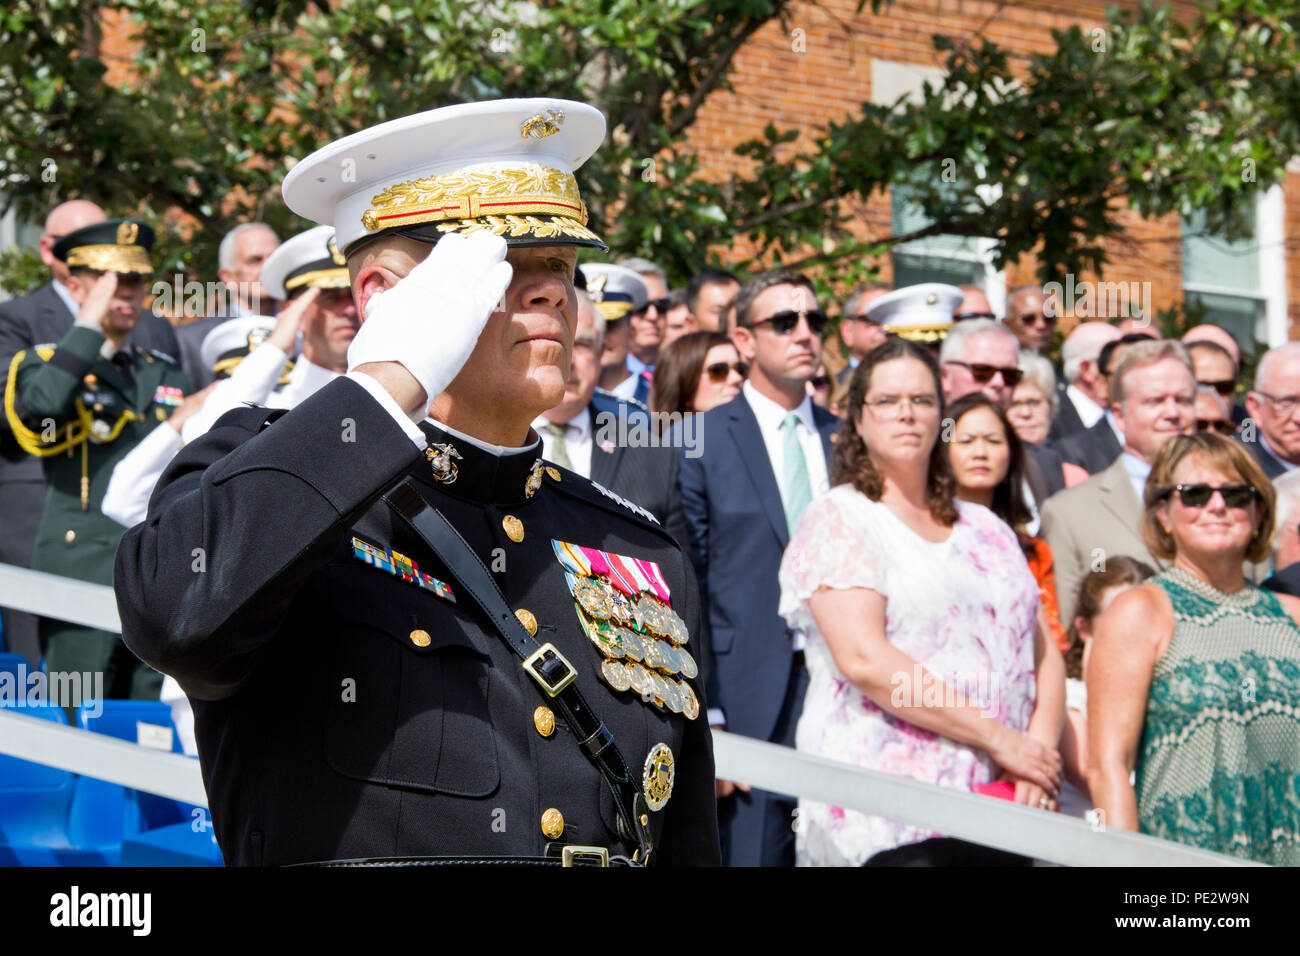 Commandant of the Marine Corps, Gen. Robert B. Neller, salutes during the Passage of Command at Marine Barracks Washington, D.C., Sept. 24, 2015. Neller took command from Gen. Joseph F. Dunford, Jr. as the 37th Commandant of the Marine Corps. (U.S. Marine Corps photo by Sgt. Gabriela Garcia/Released) Stock Photo